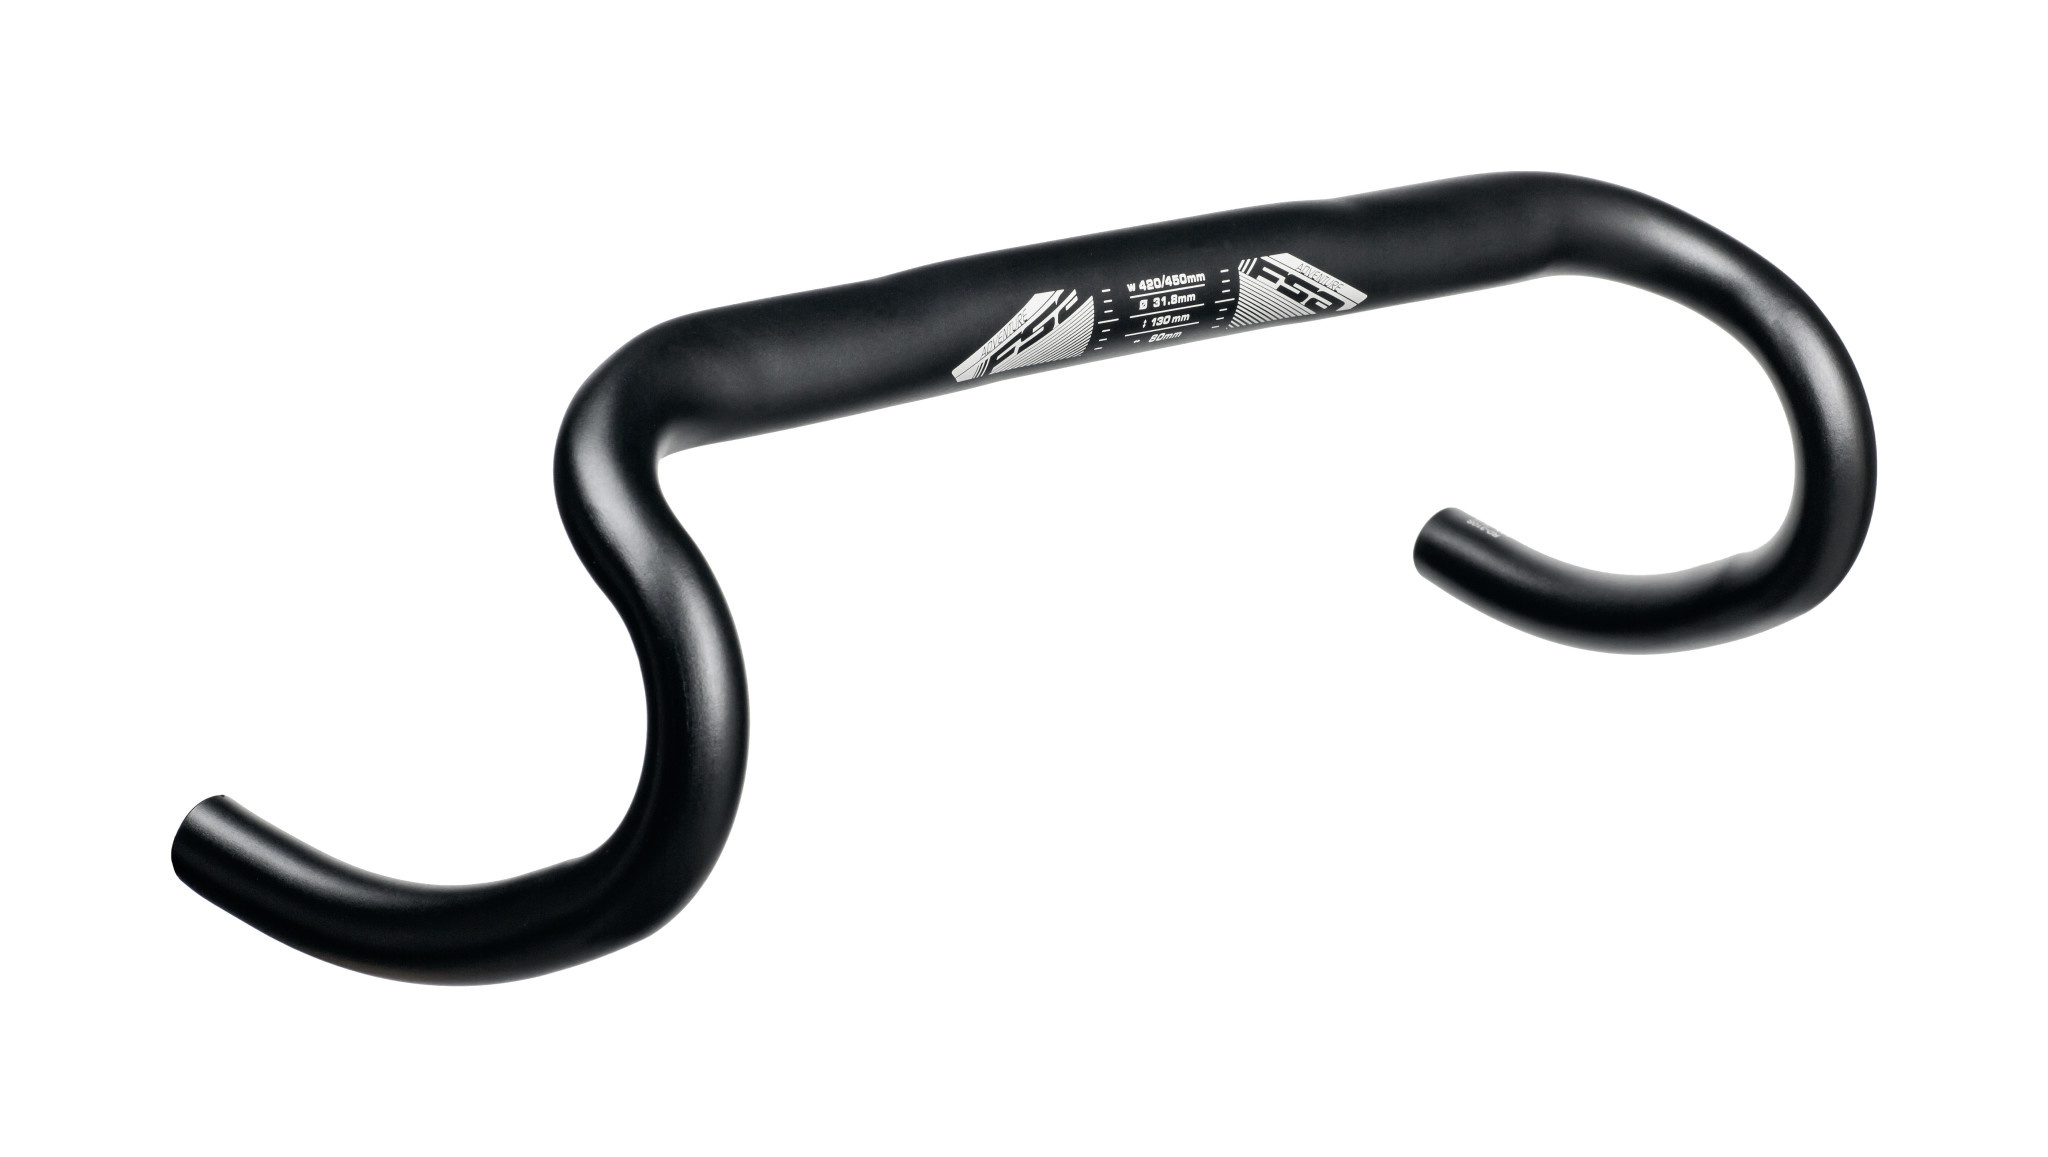 Adventure Compact Bar (Black, 42cm, V16)